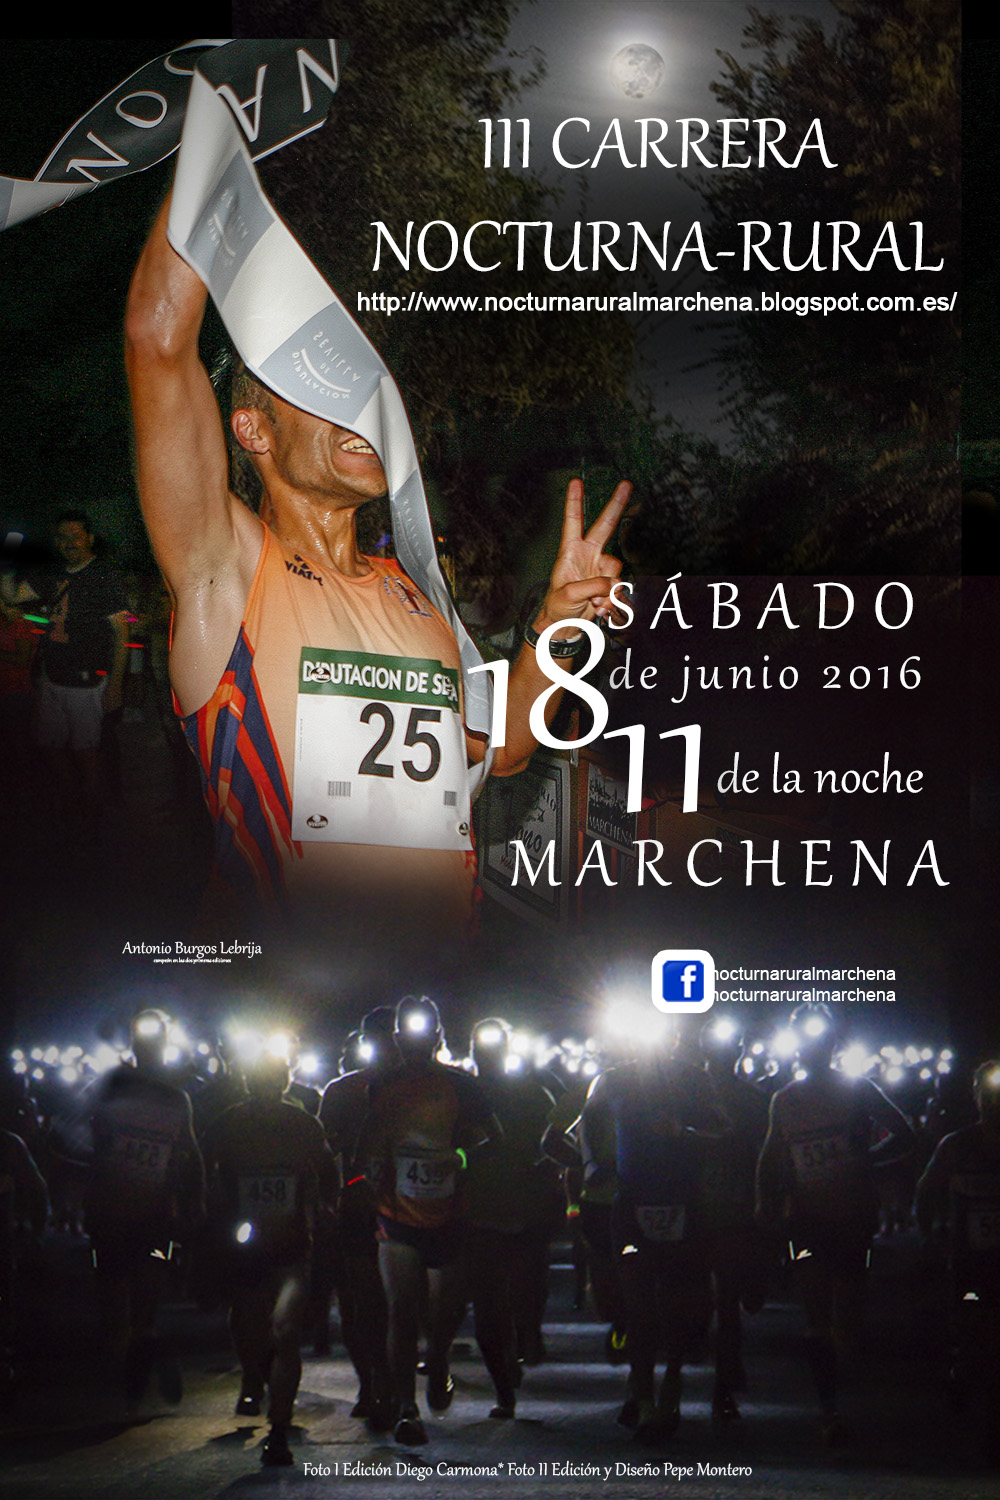 III Carrera Nocturna-Rural Marchena